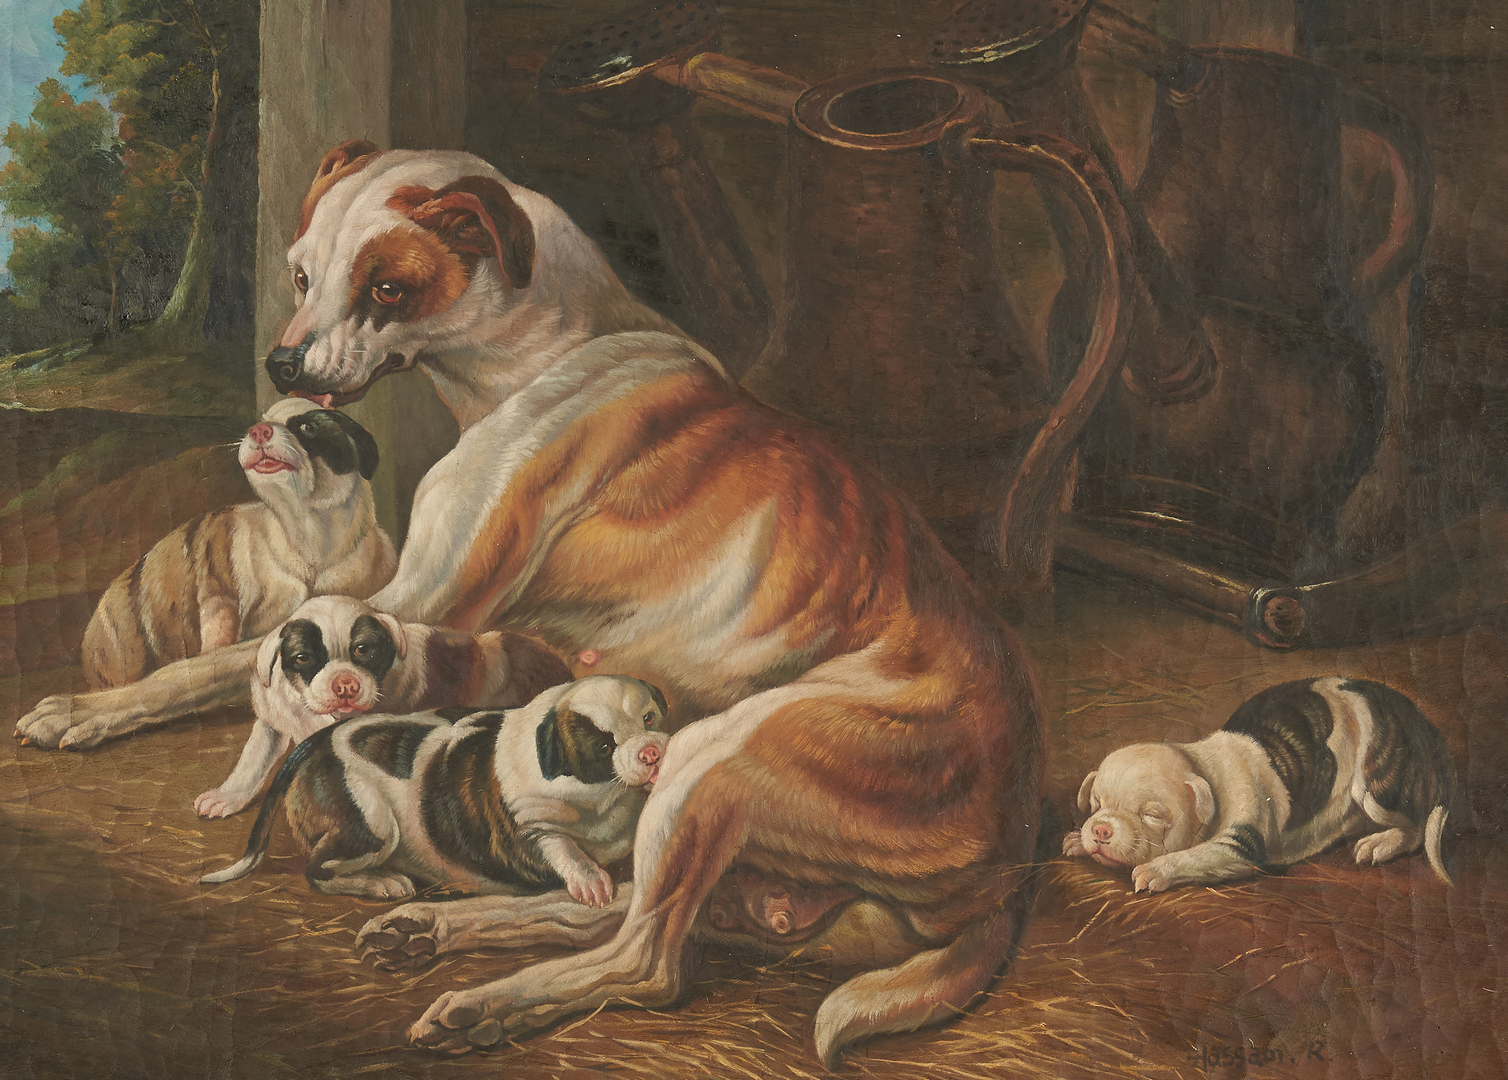 Lot 995: Genre Scene with Puppies, Signed Hassam